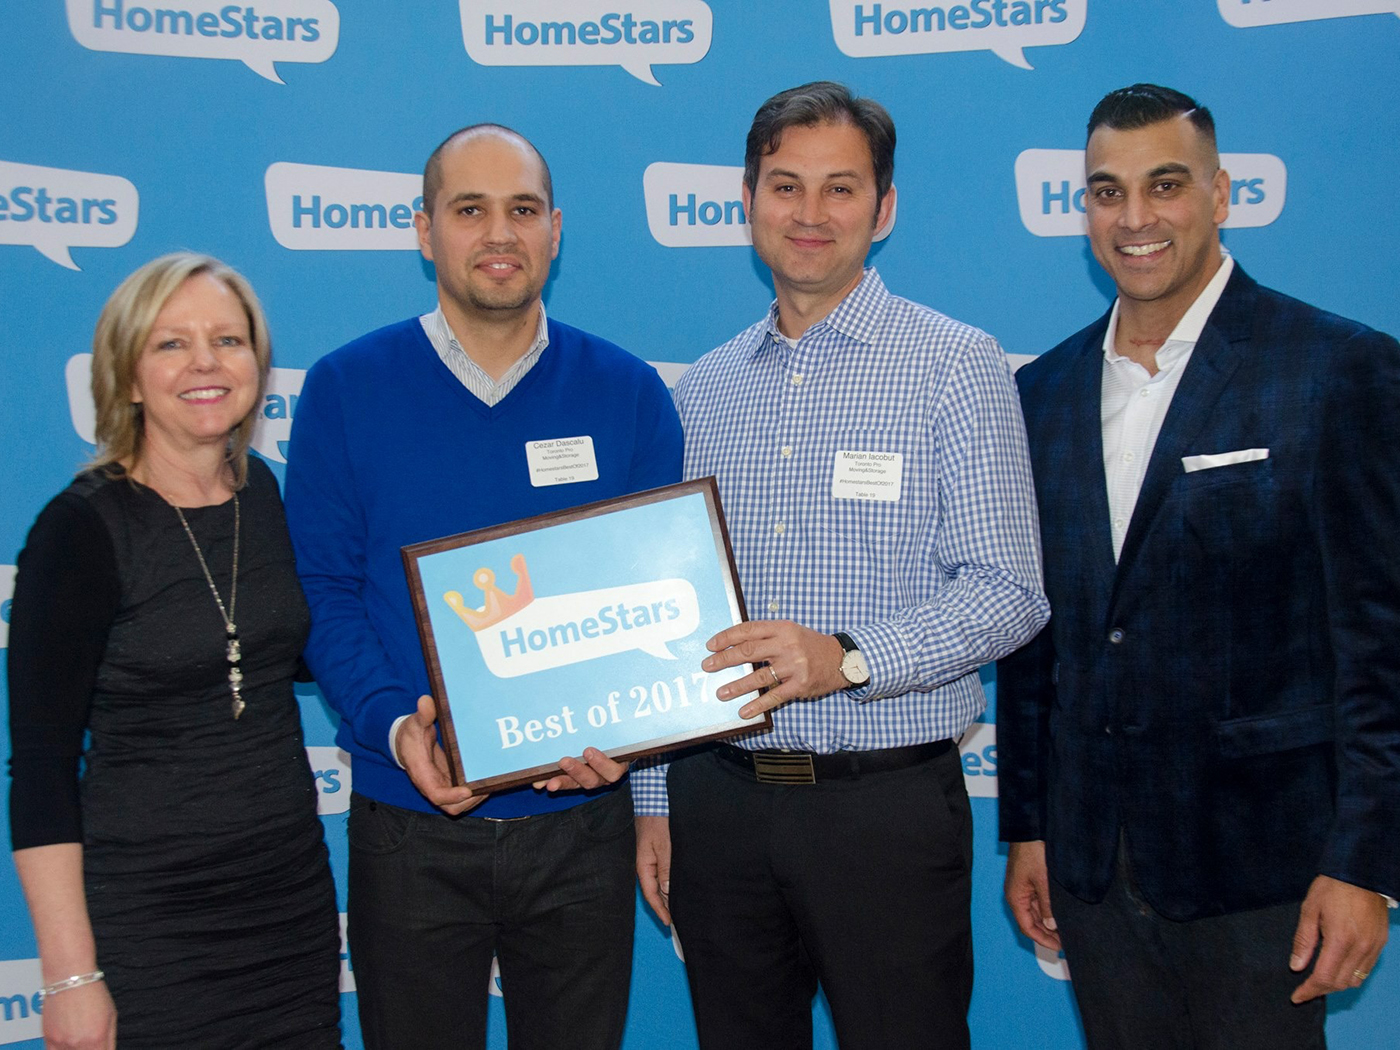 Moving Company Toronto Homestars Awards Final